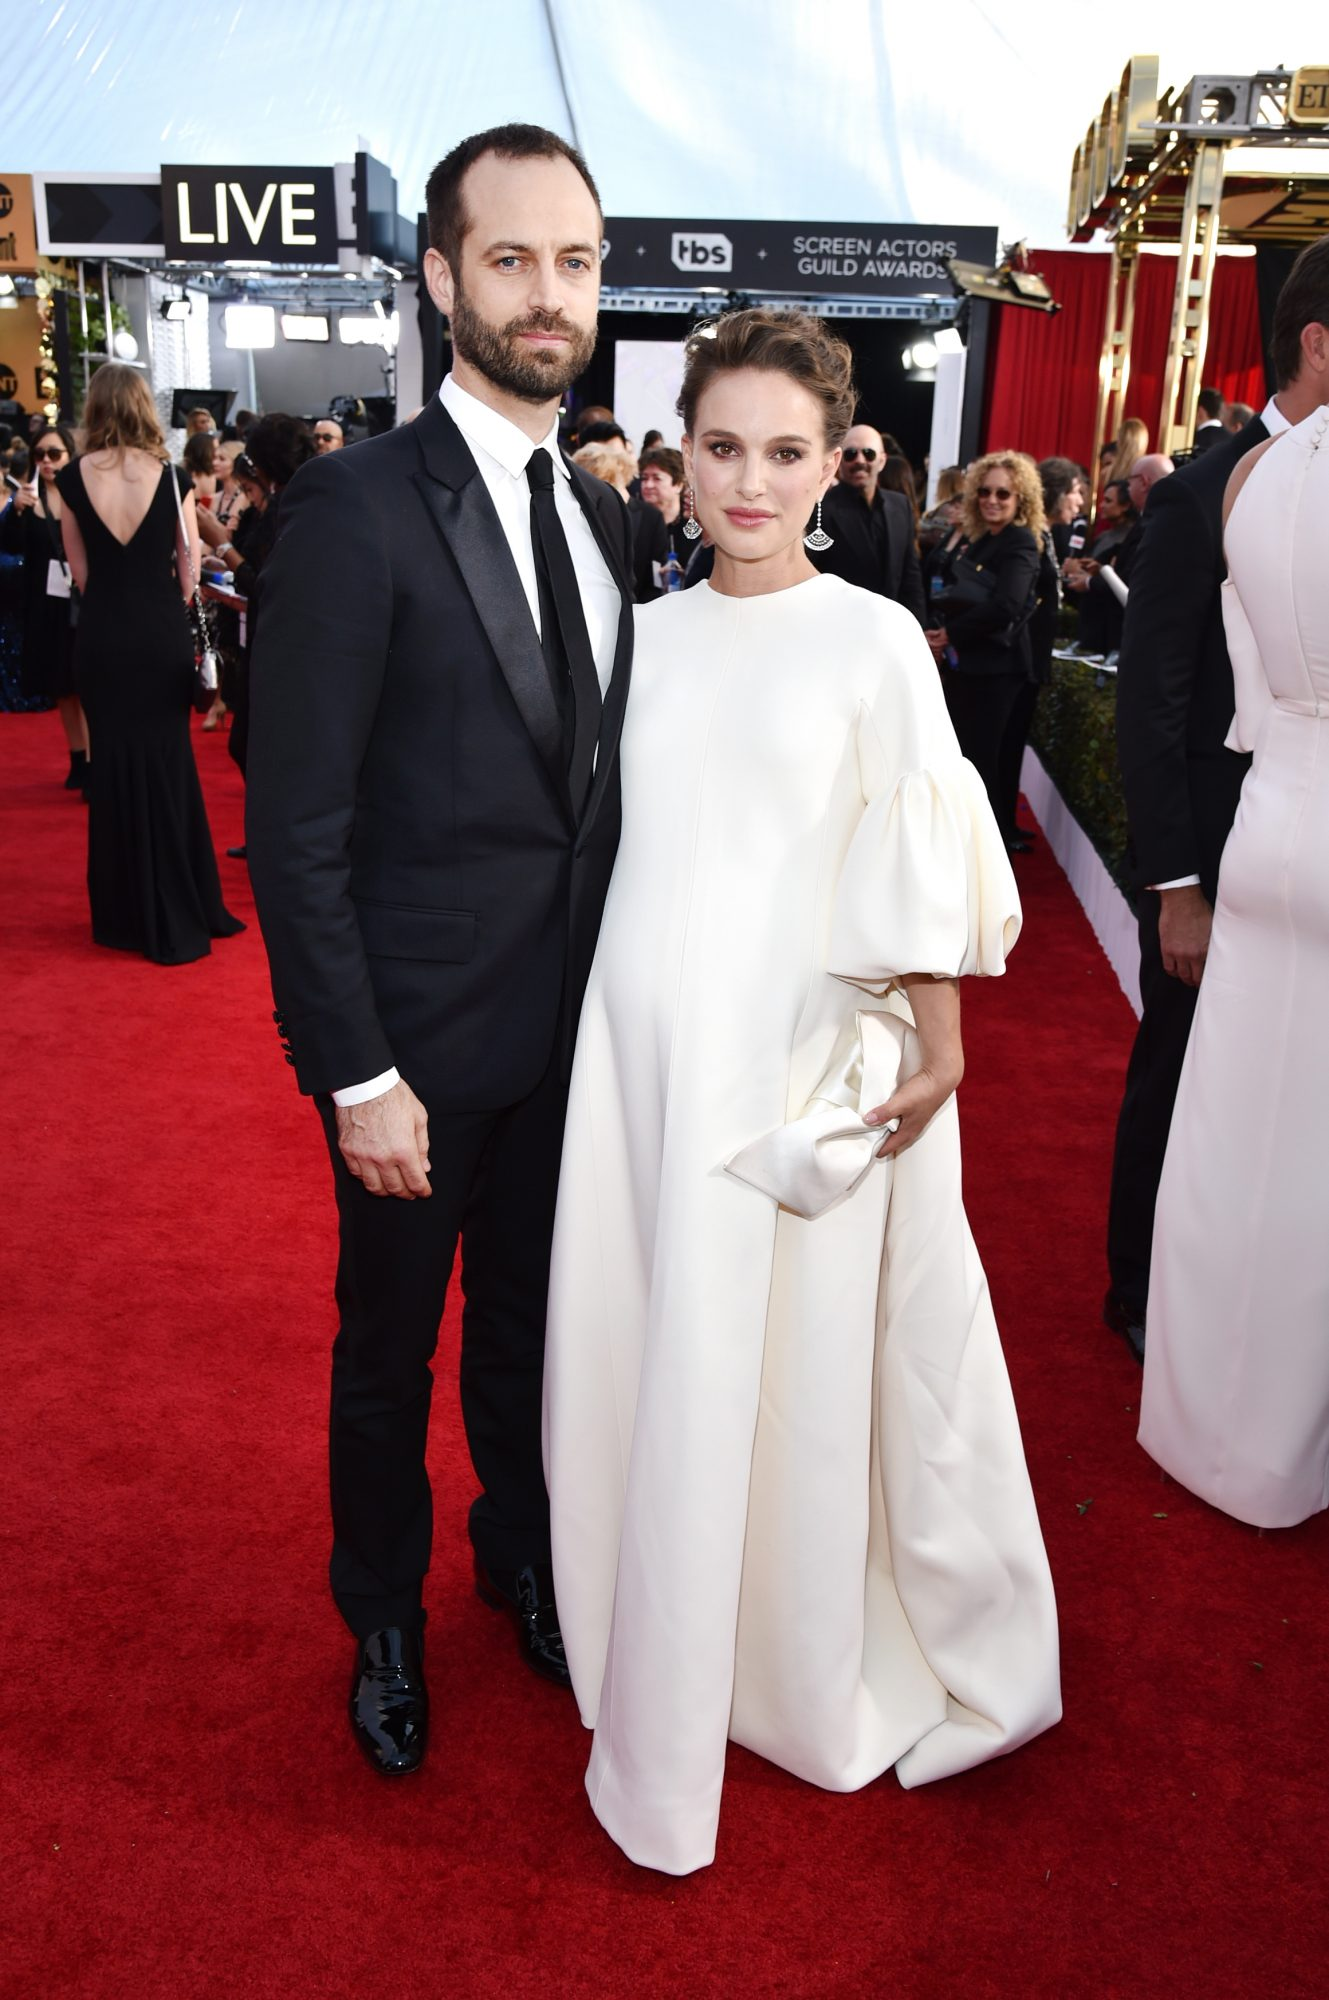 LOS ANGELES, CA - JANUARY 29: Choreographer Benjamin Millepied (L) and actor Natalie Portman attend The 23rd Annual Screen Actors Guild Awards at The Shrine Auditorium on January 29, 2017 in Los Angeles, California. (Photo by John Shearer/Getty Images for People Magazine)